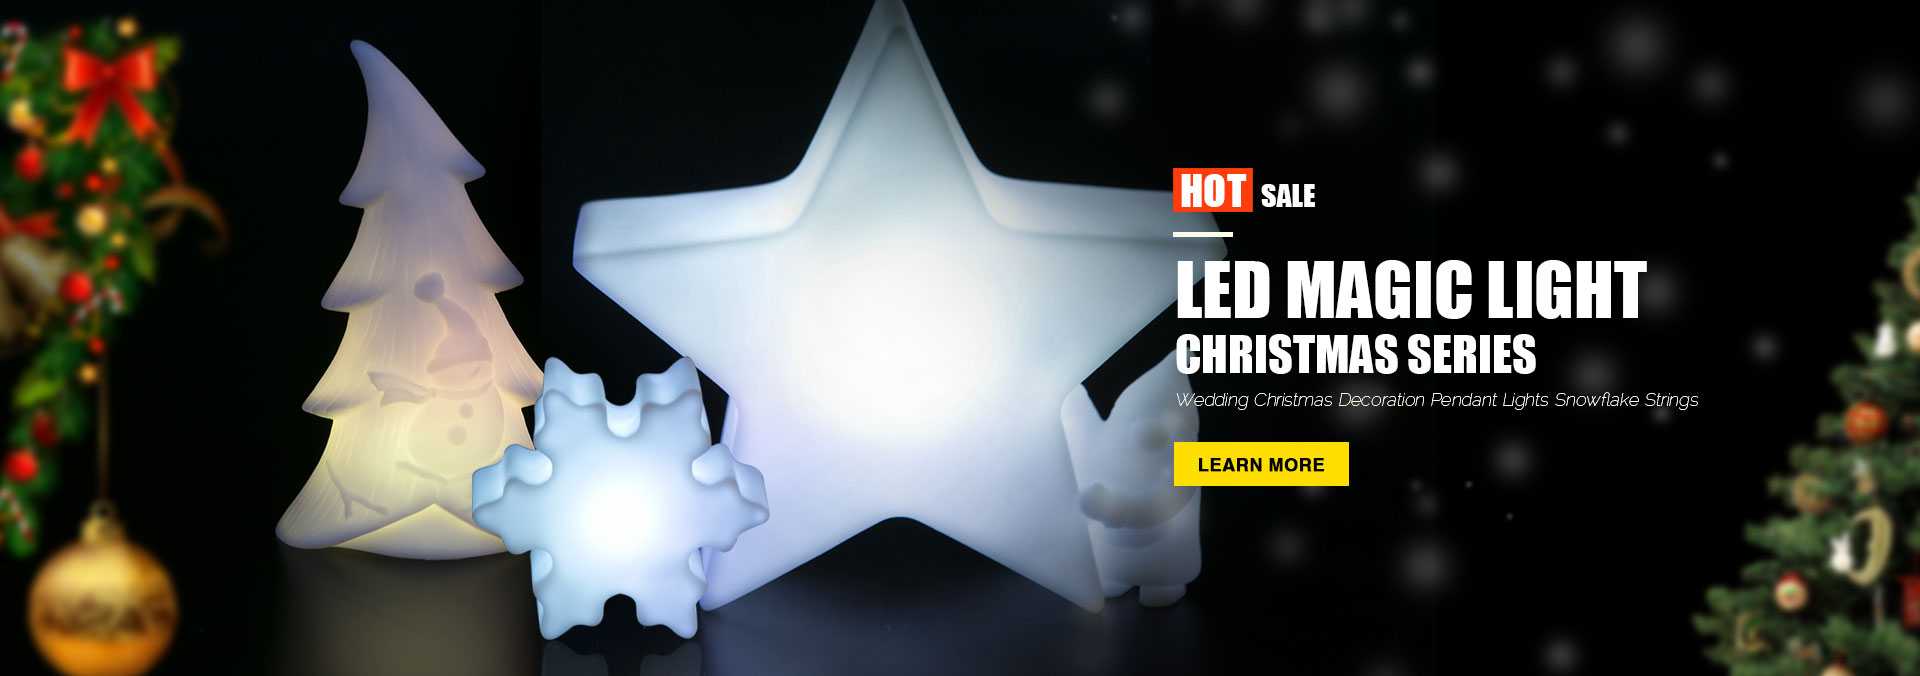 Led Christmas Magic Light